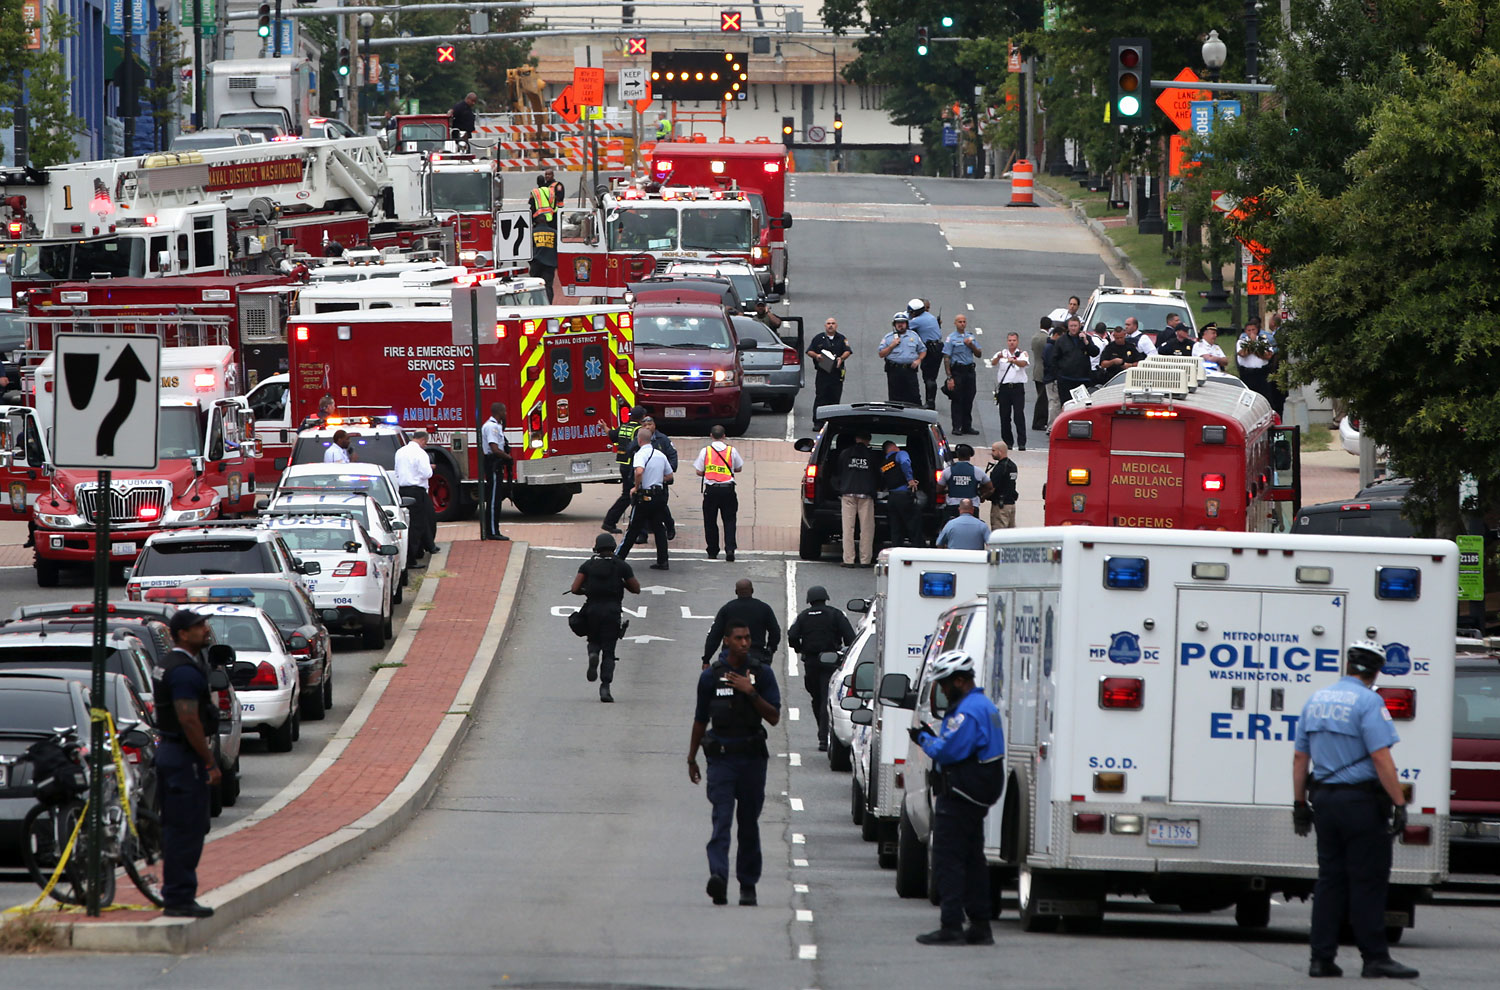 Emergency vehicles and law enforcement personnel respond to a shooting at an entrance to the Washington Navy Yard, Sept. 16, 2013 in Washington, DC.